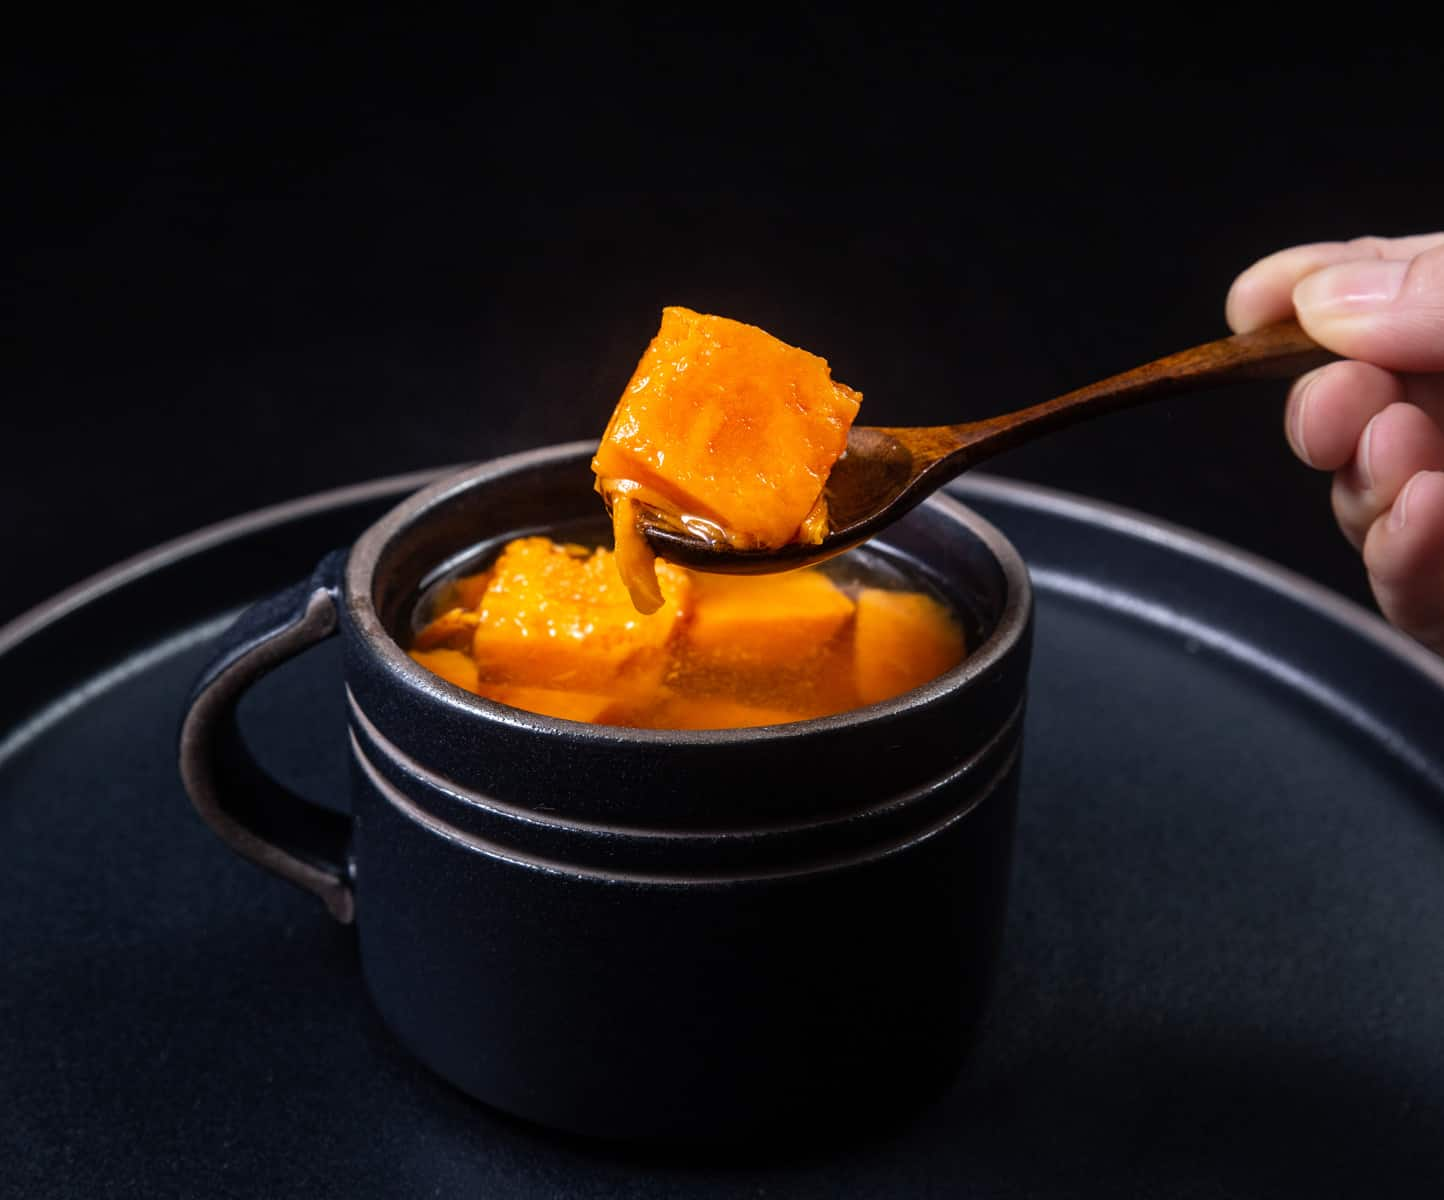 Instant Pot Chinese Sweet Potato Soup | 番薯糖水 | Pressure Cooker Chinese Sweet Potato Soup | 番薯姜糖水 | Sweet Potato Soup | Instant Pot Chinese Recipes | Instant Pot Dessert | Instant Pot Recipes | Instant Pot Soup